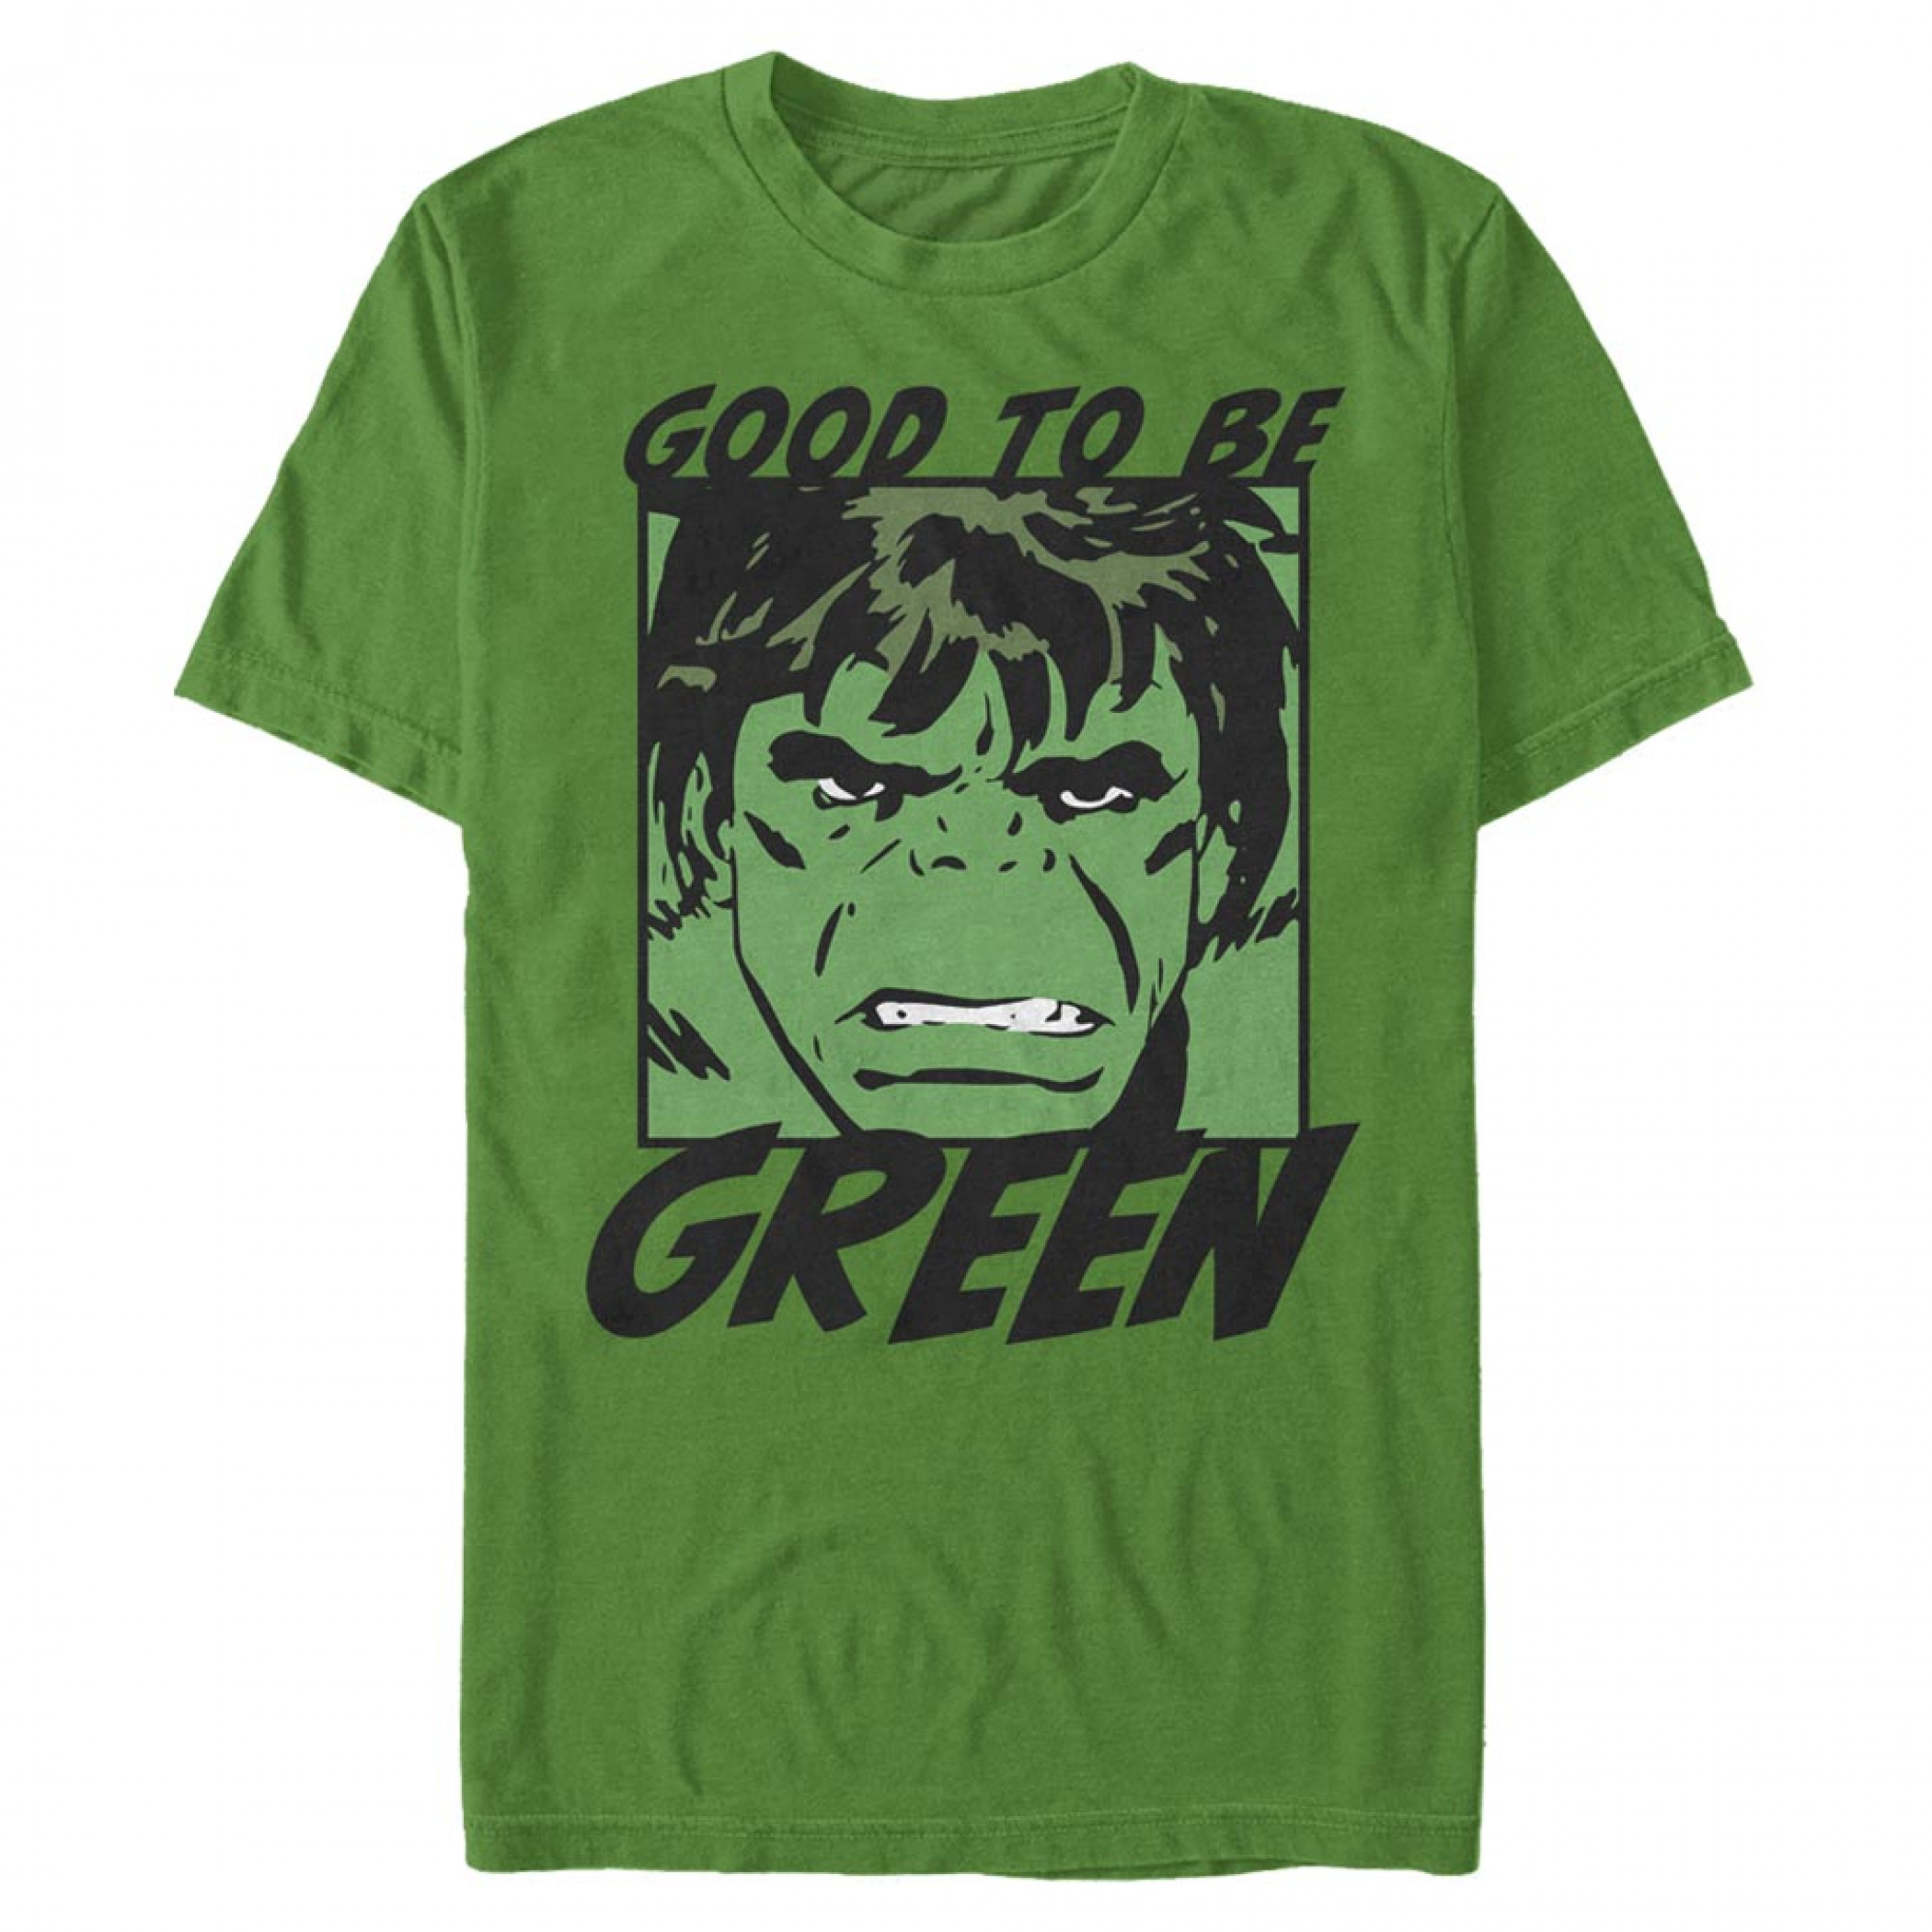 The Incredible Hulk It's Good to Be Green St. Patrick's Day T-Shirt